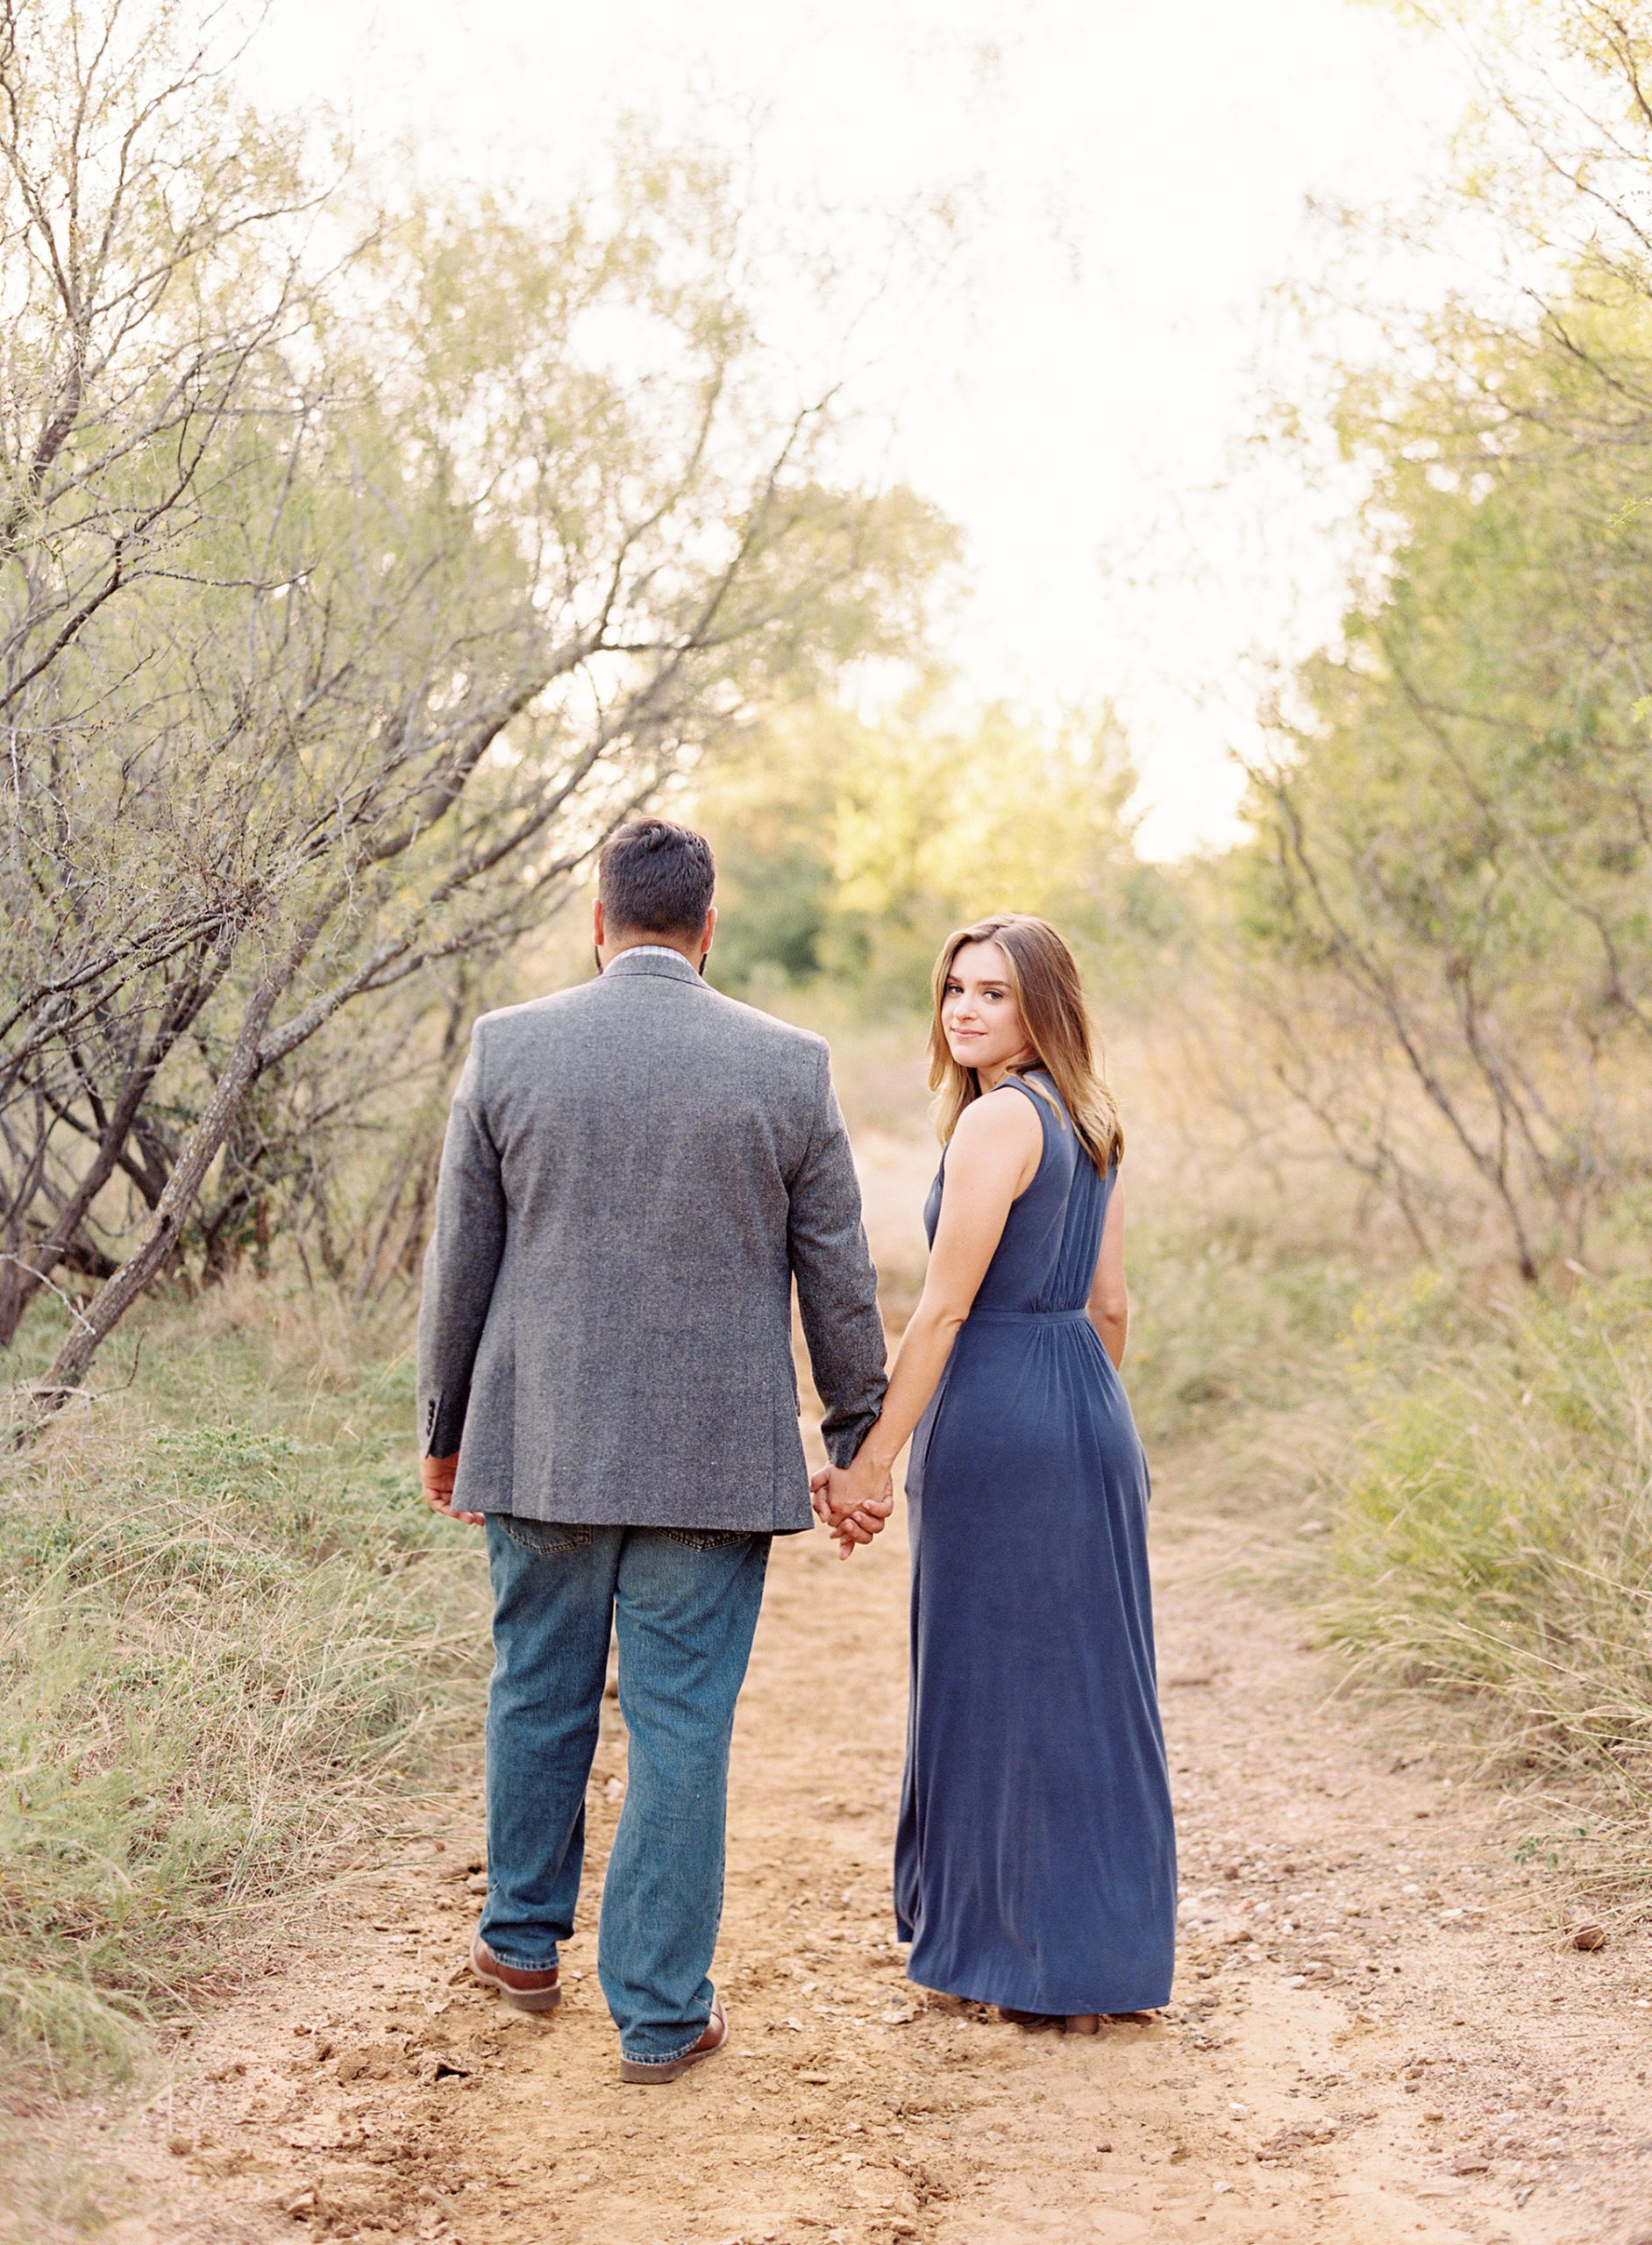 Lauren Peele Photography - Engagement Photo - Engagement Pictures - McKinney, Texas - Engagement Ring - Each & Every Detail Wedding Planning